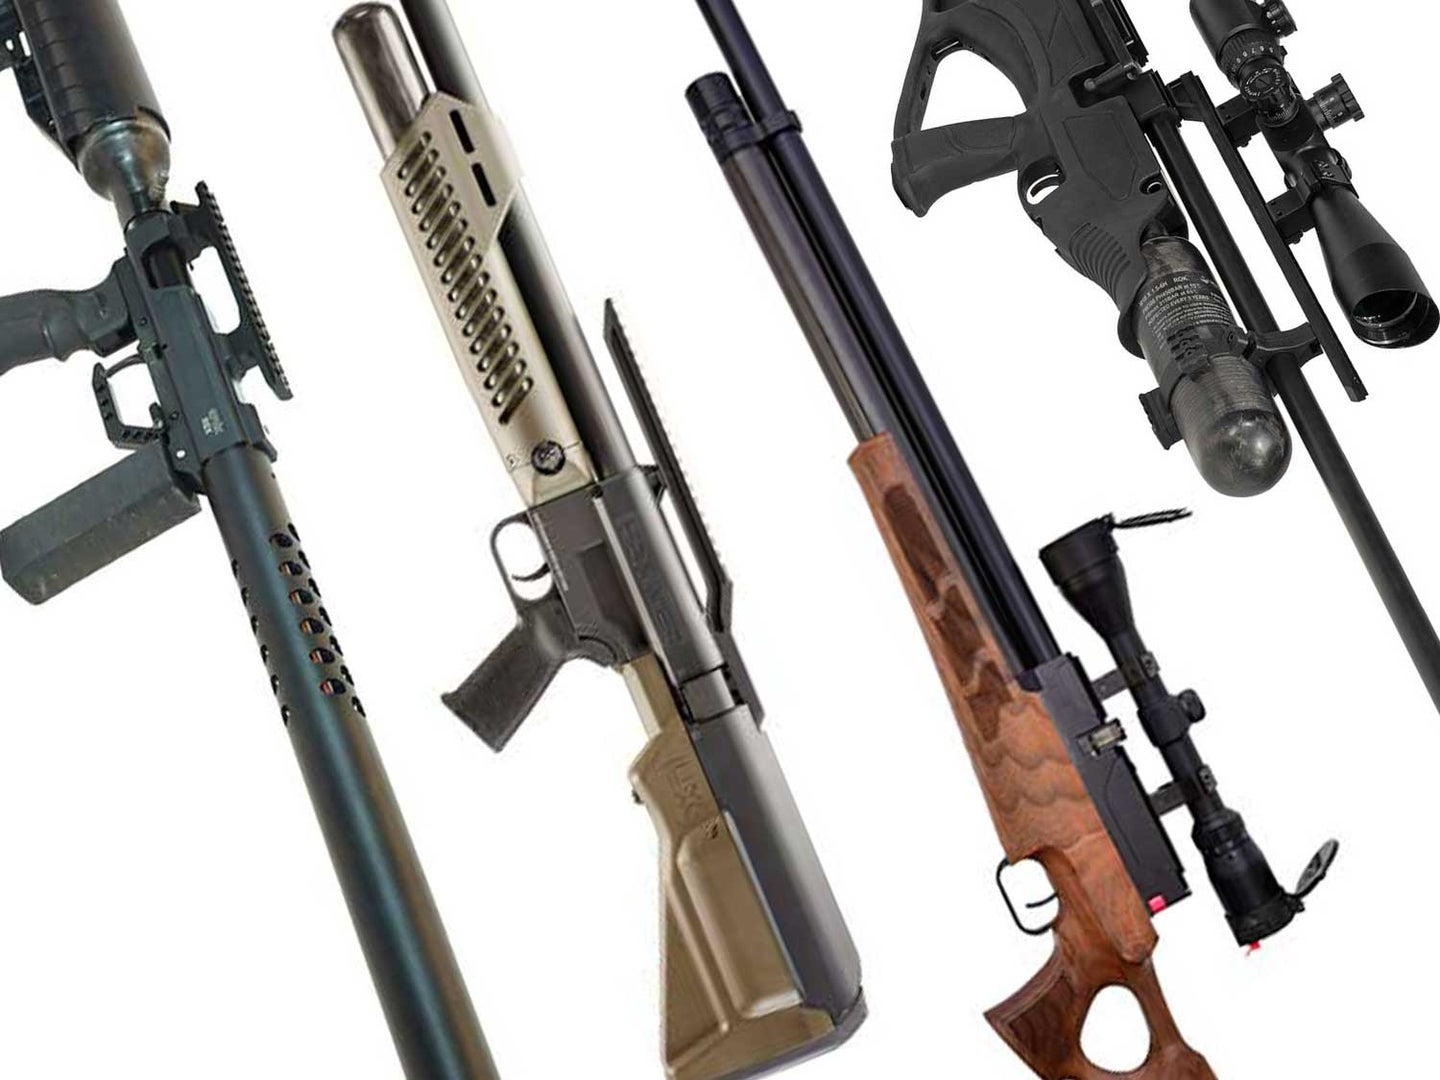 A collage of air guns on a white background.